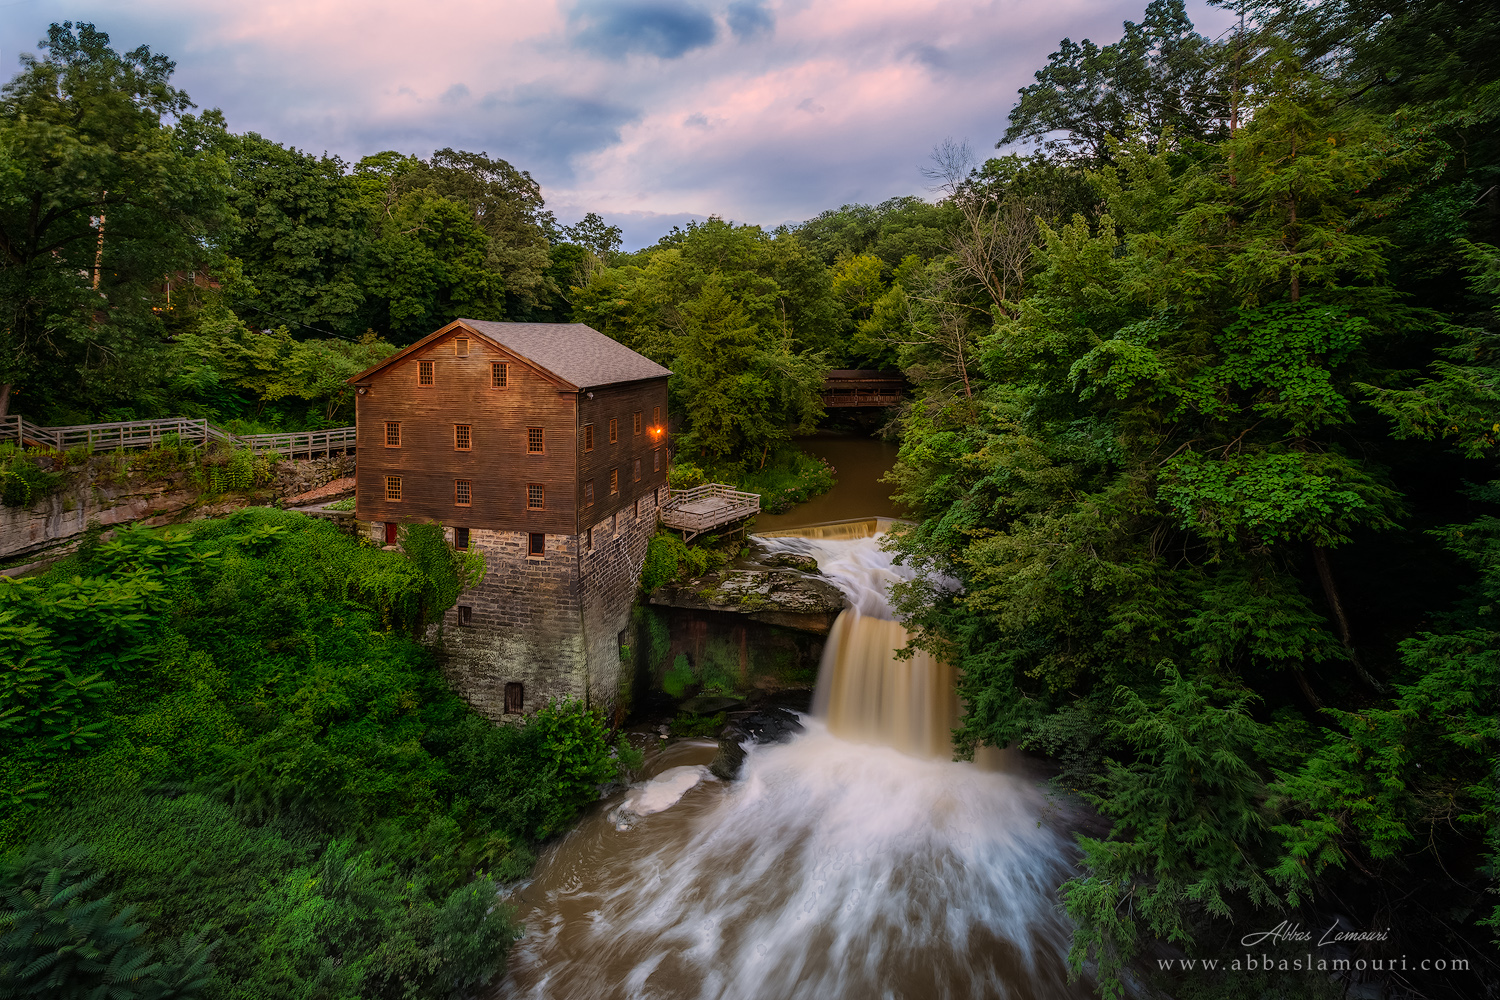 Lanterman's Mill - Mill Creek MetroParks - Youngstown, Ohio